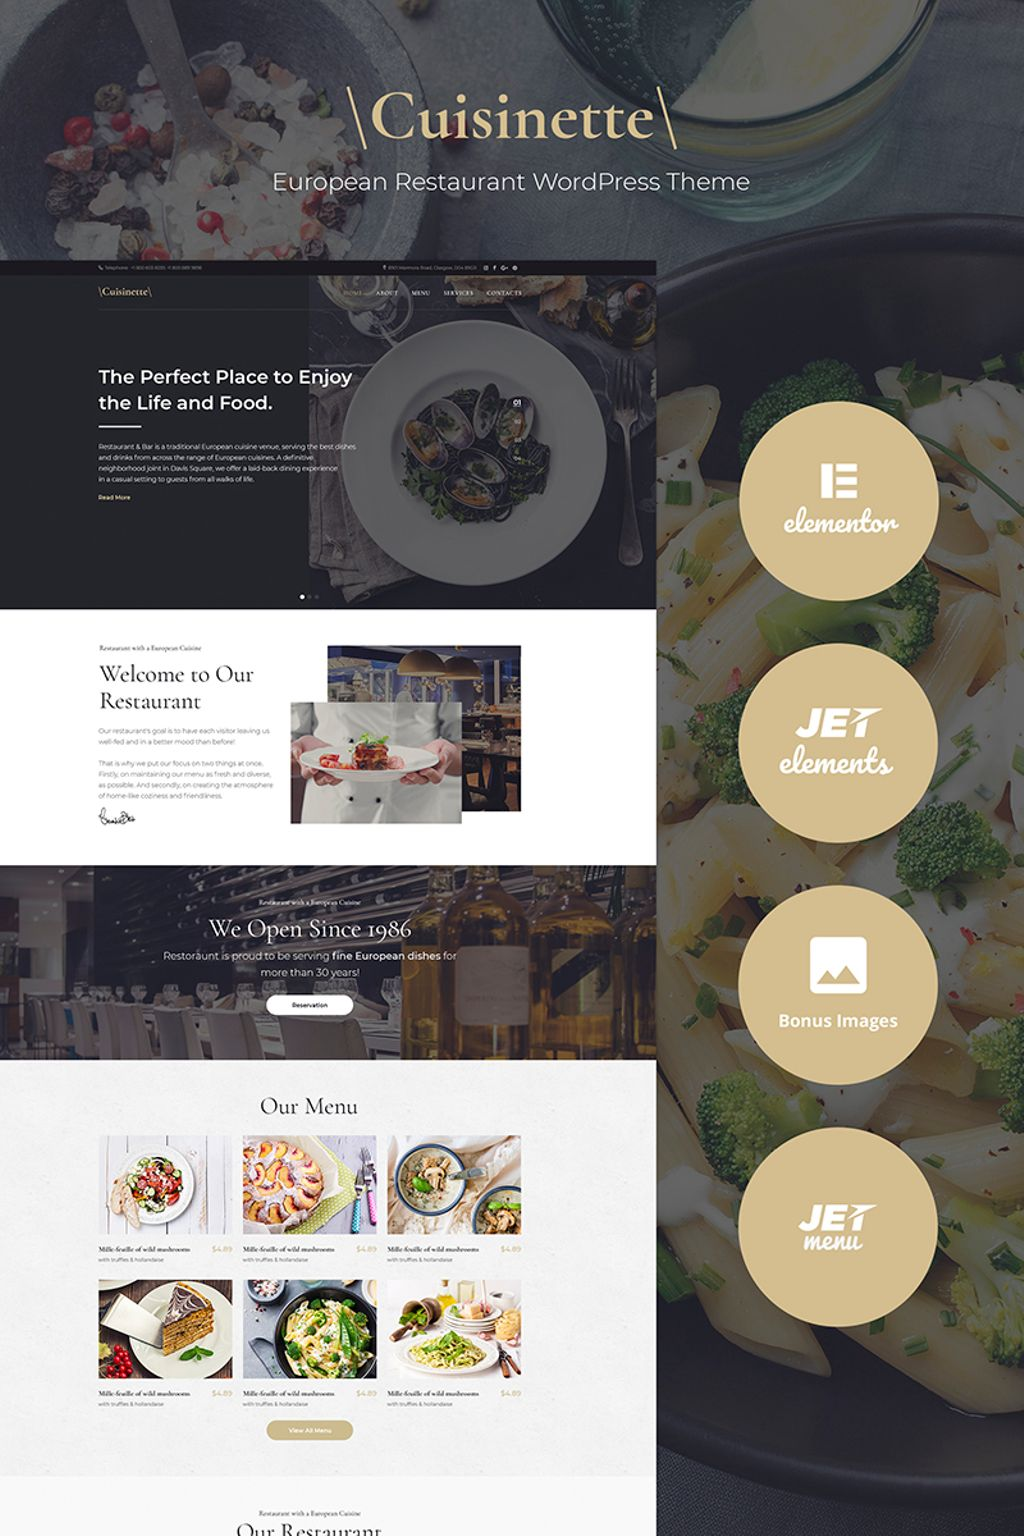 Cuisinette - European Restaurant Cross-browser WordPress Theme - screenshot